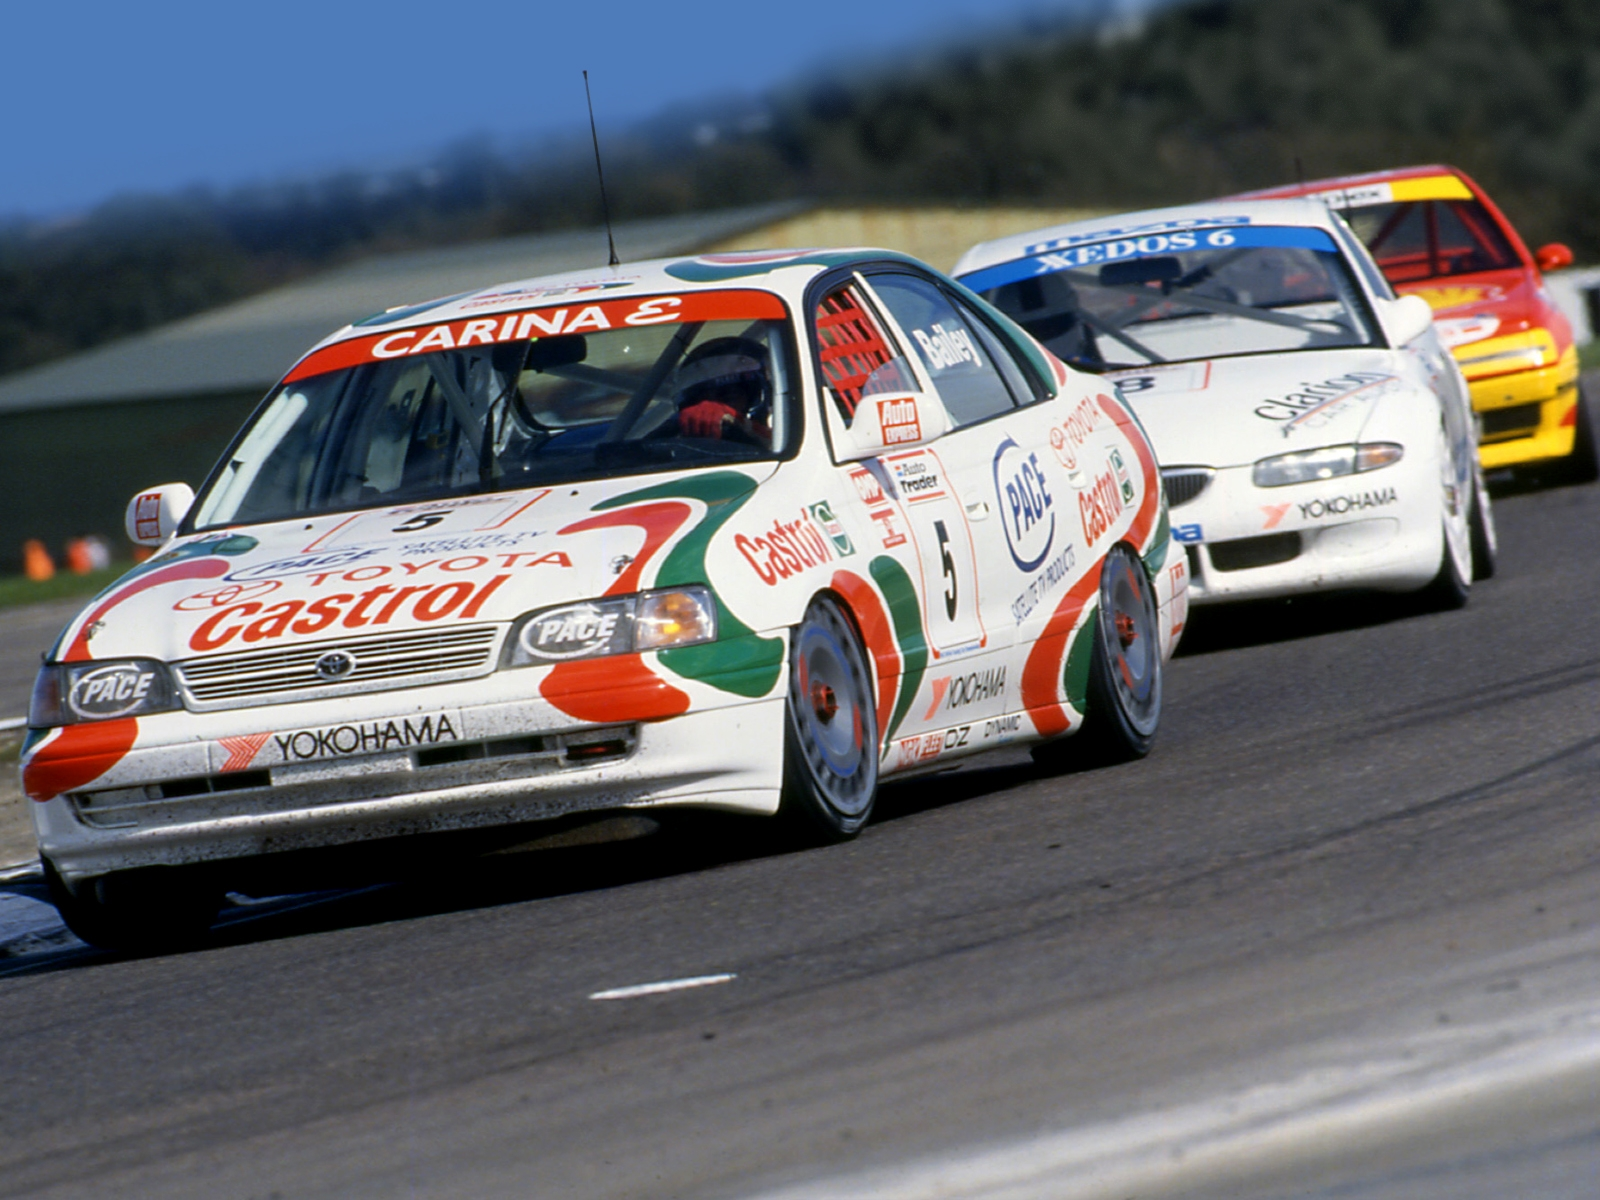 Iphone Wallpaper Pinterest Toyota Carina E Btcc At190 1994 96 Wallpaper And